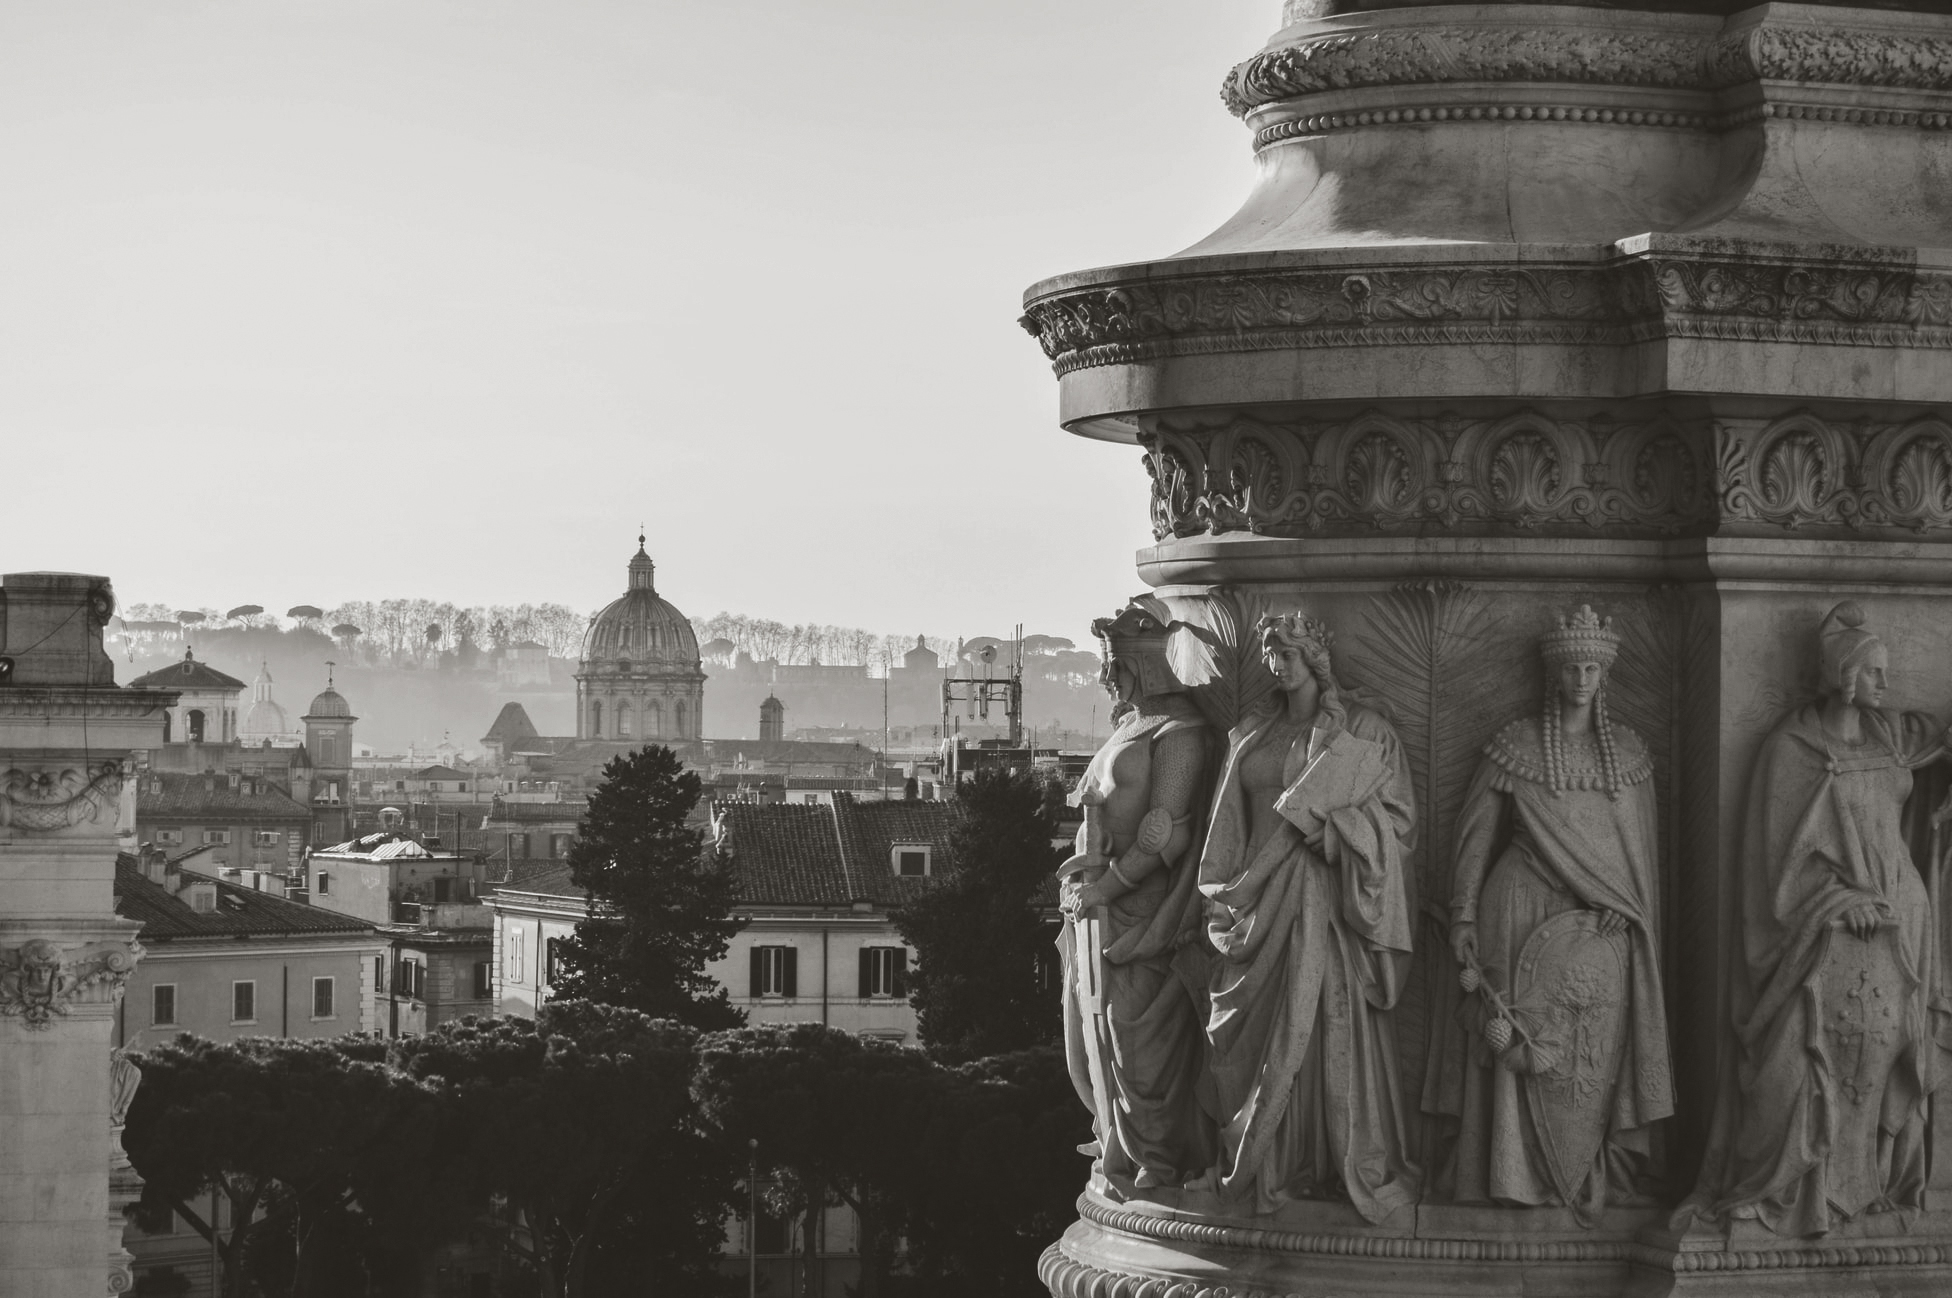 Inflation, Rome